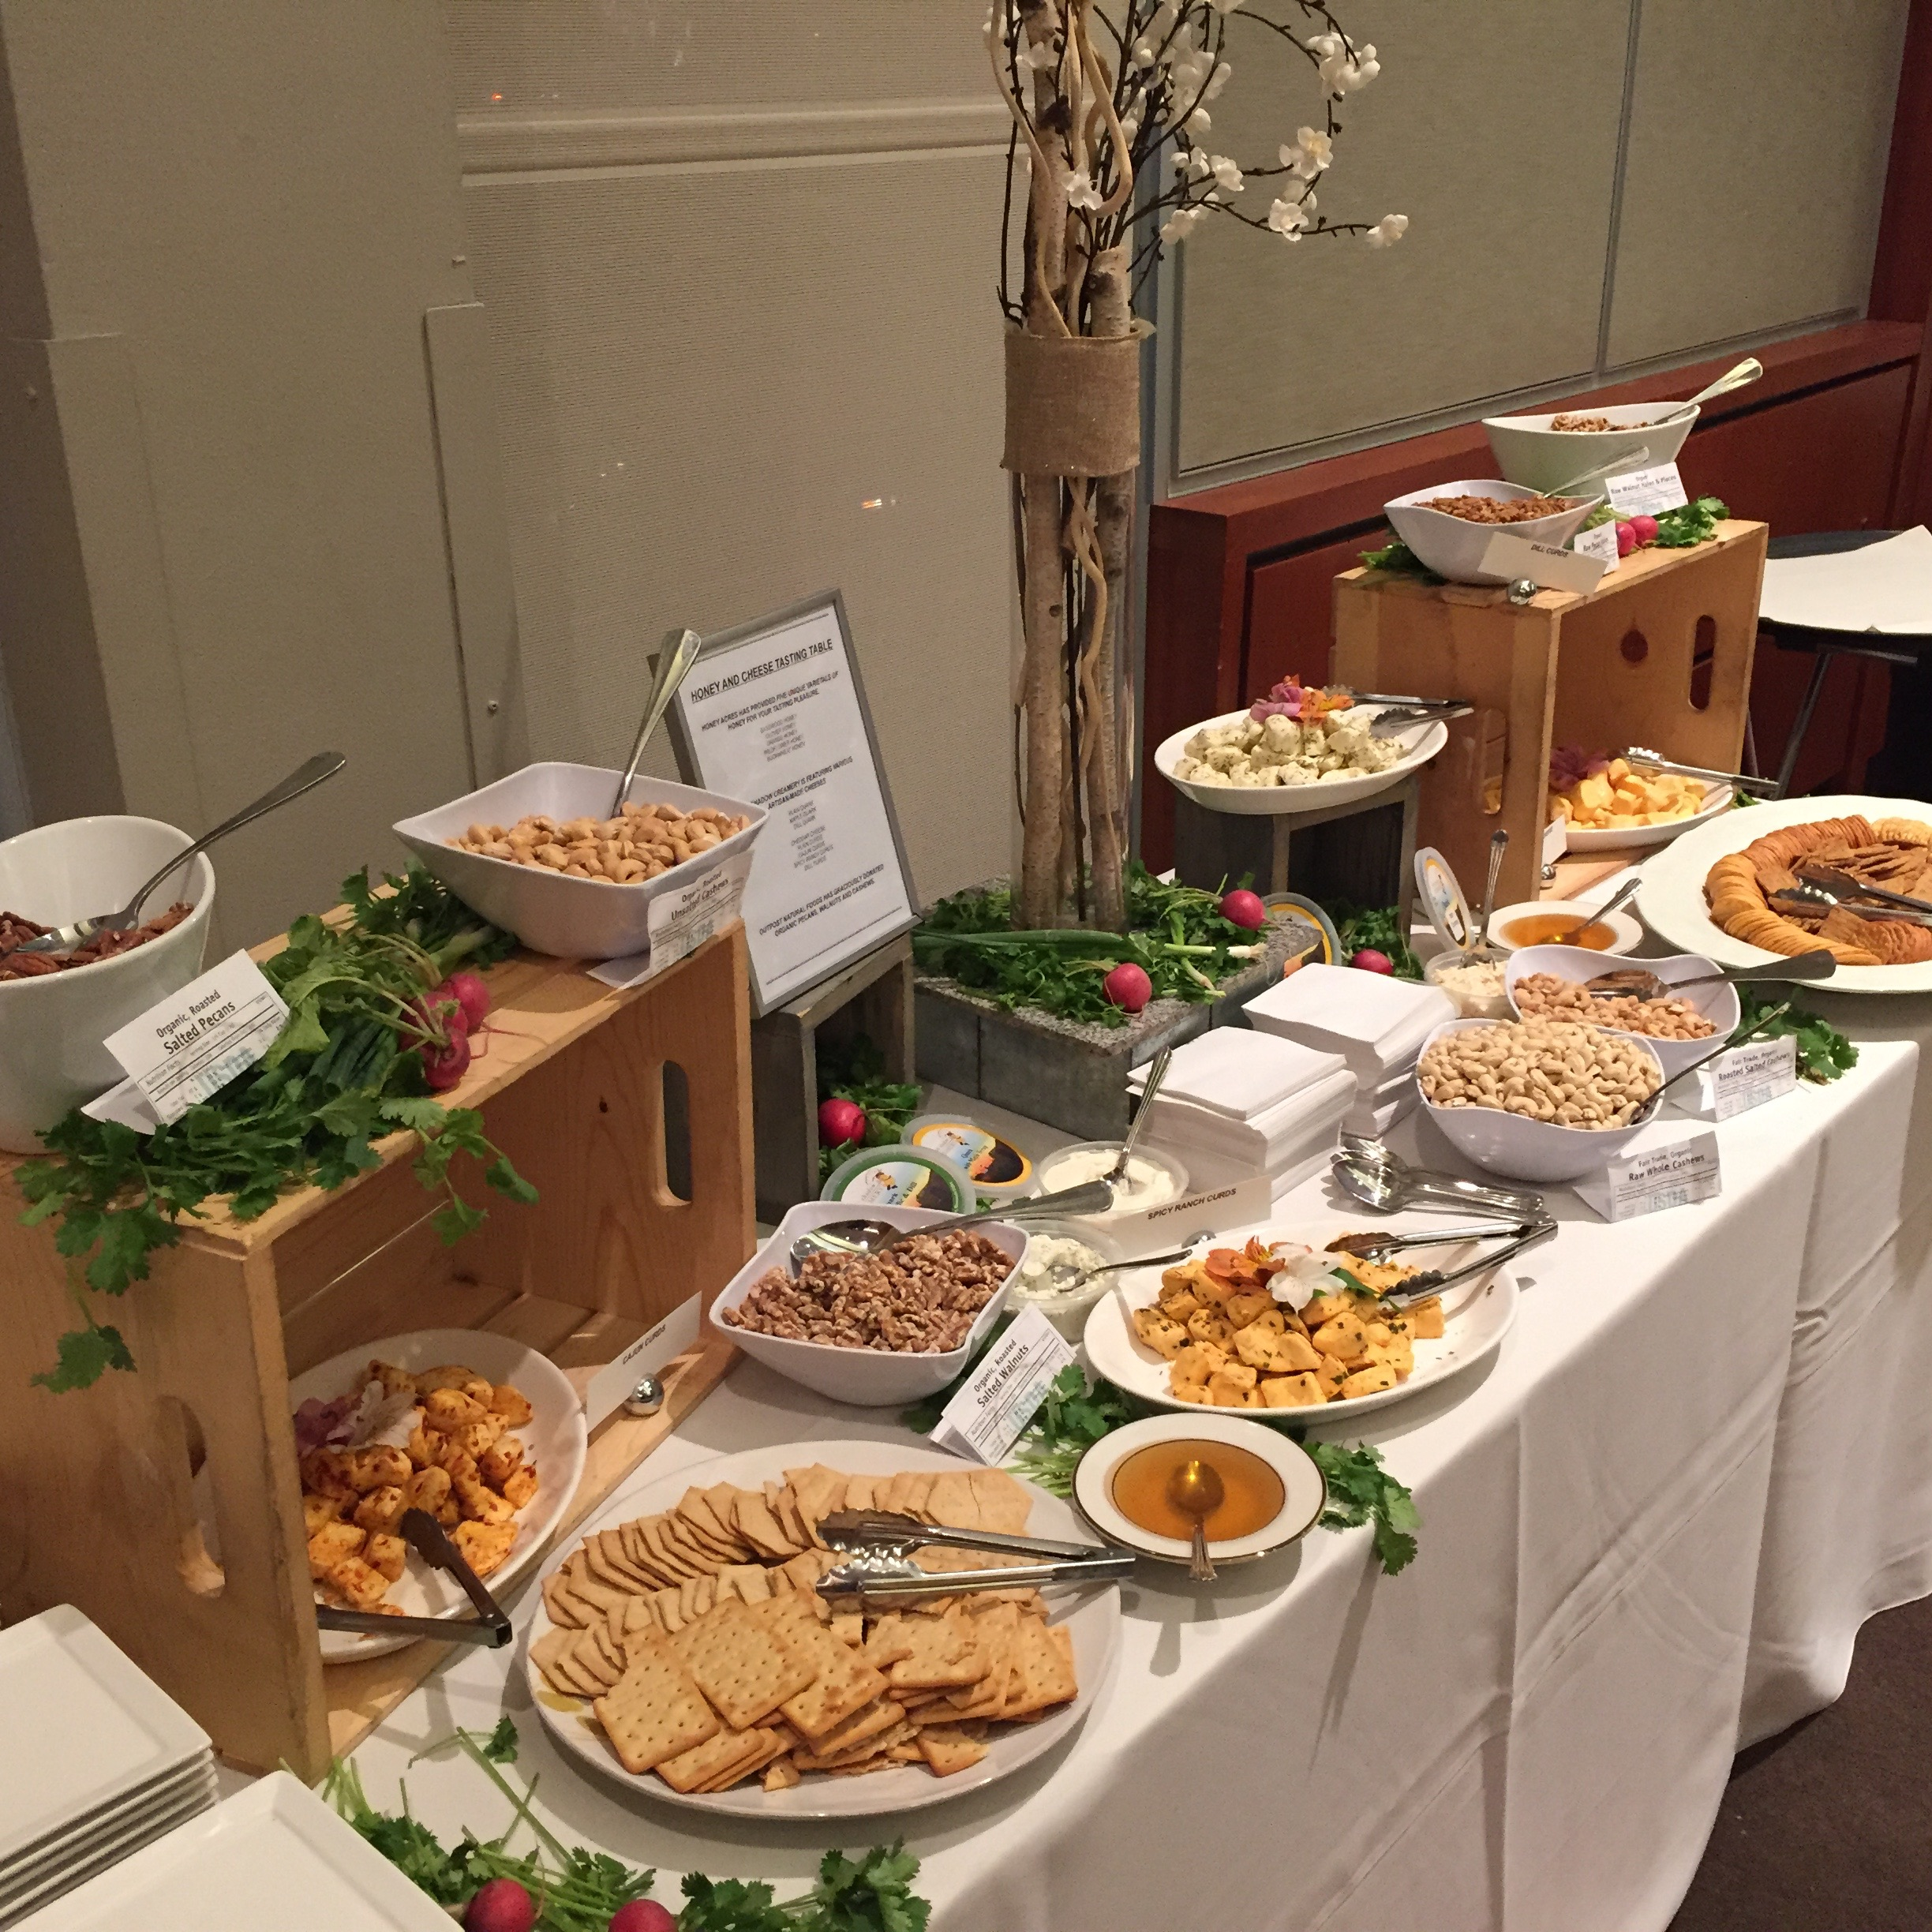 Locally sourced appetizers for the U.S. Green Building Council's Transformation Awards Reception